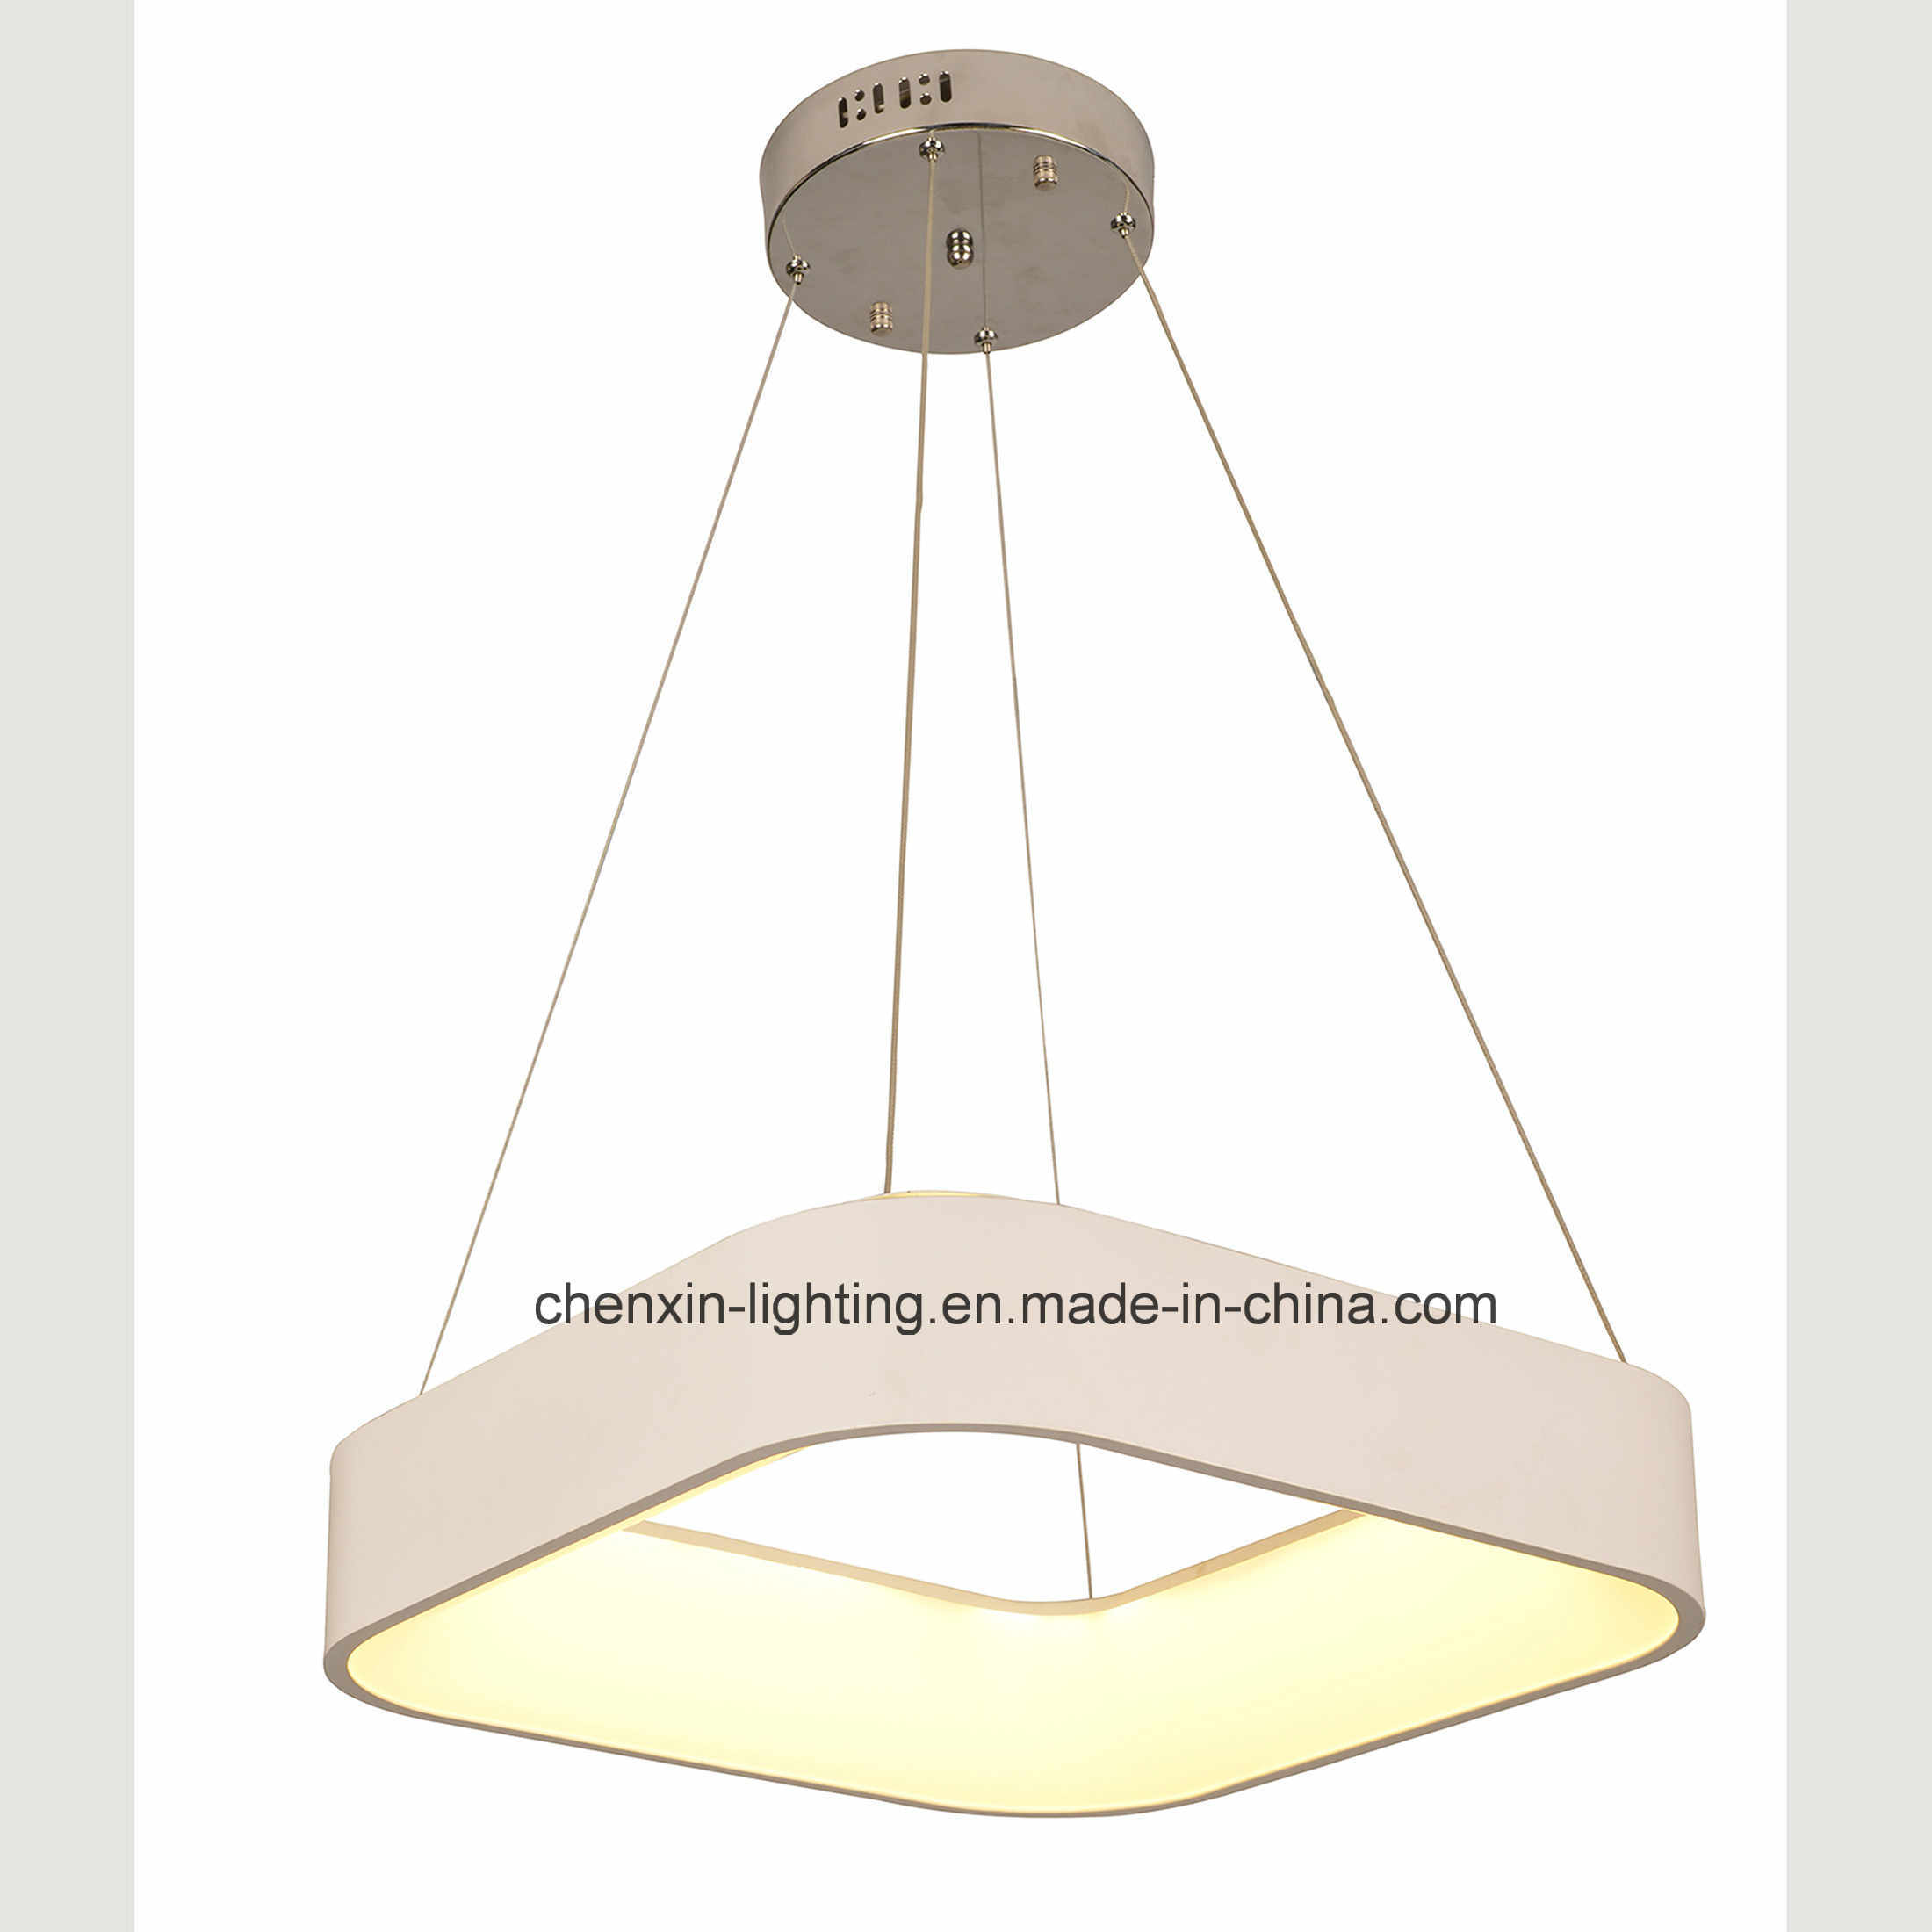 Modern Lighting Quotes Hot Item Modern Square Led Acrylic Hanging Light Pendant Lamp